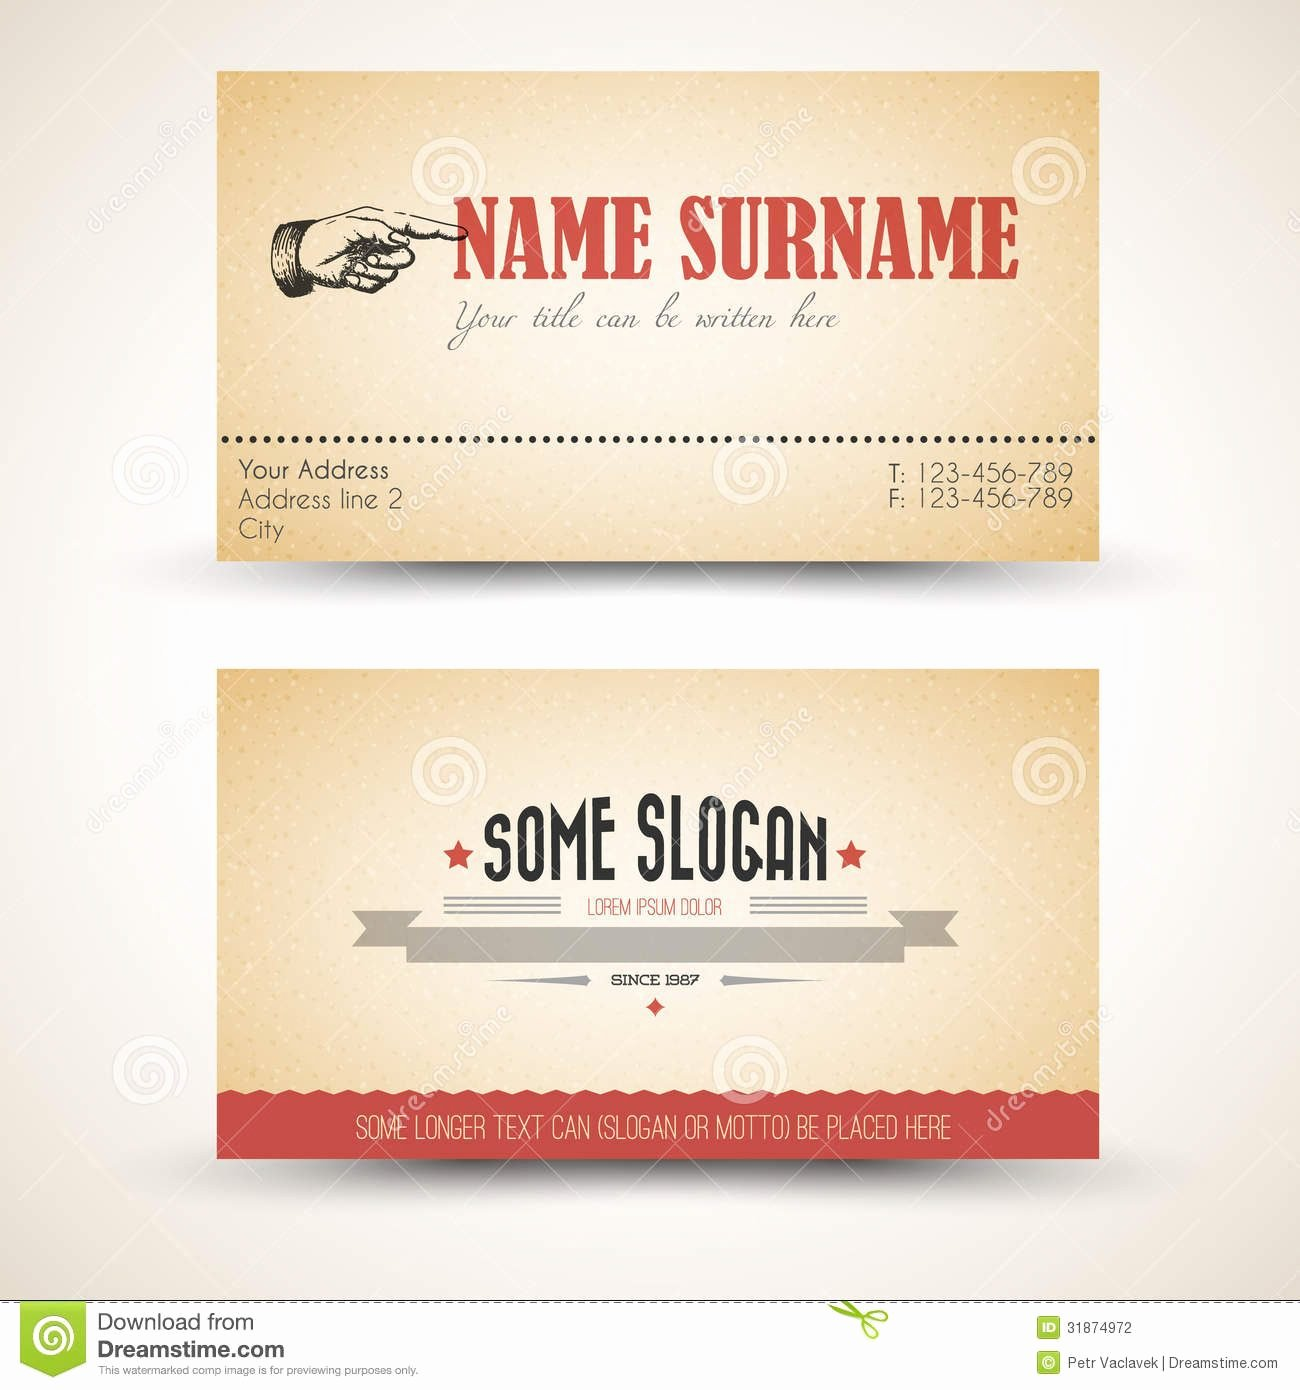 Postcard Template Front and Back Luxury Personal Business Card Templates Front and Back